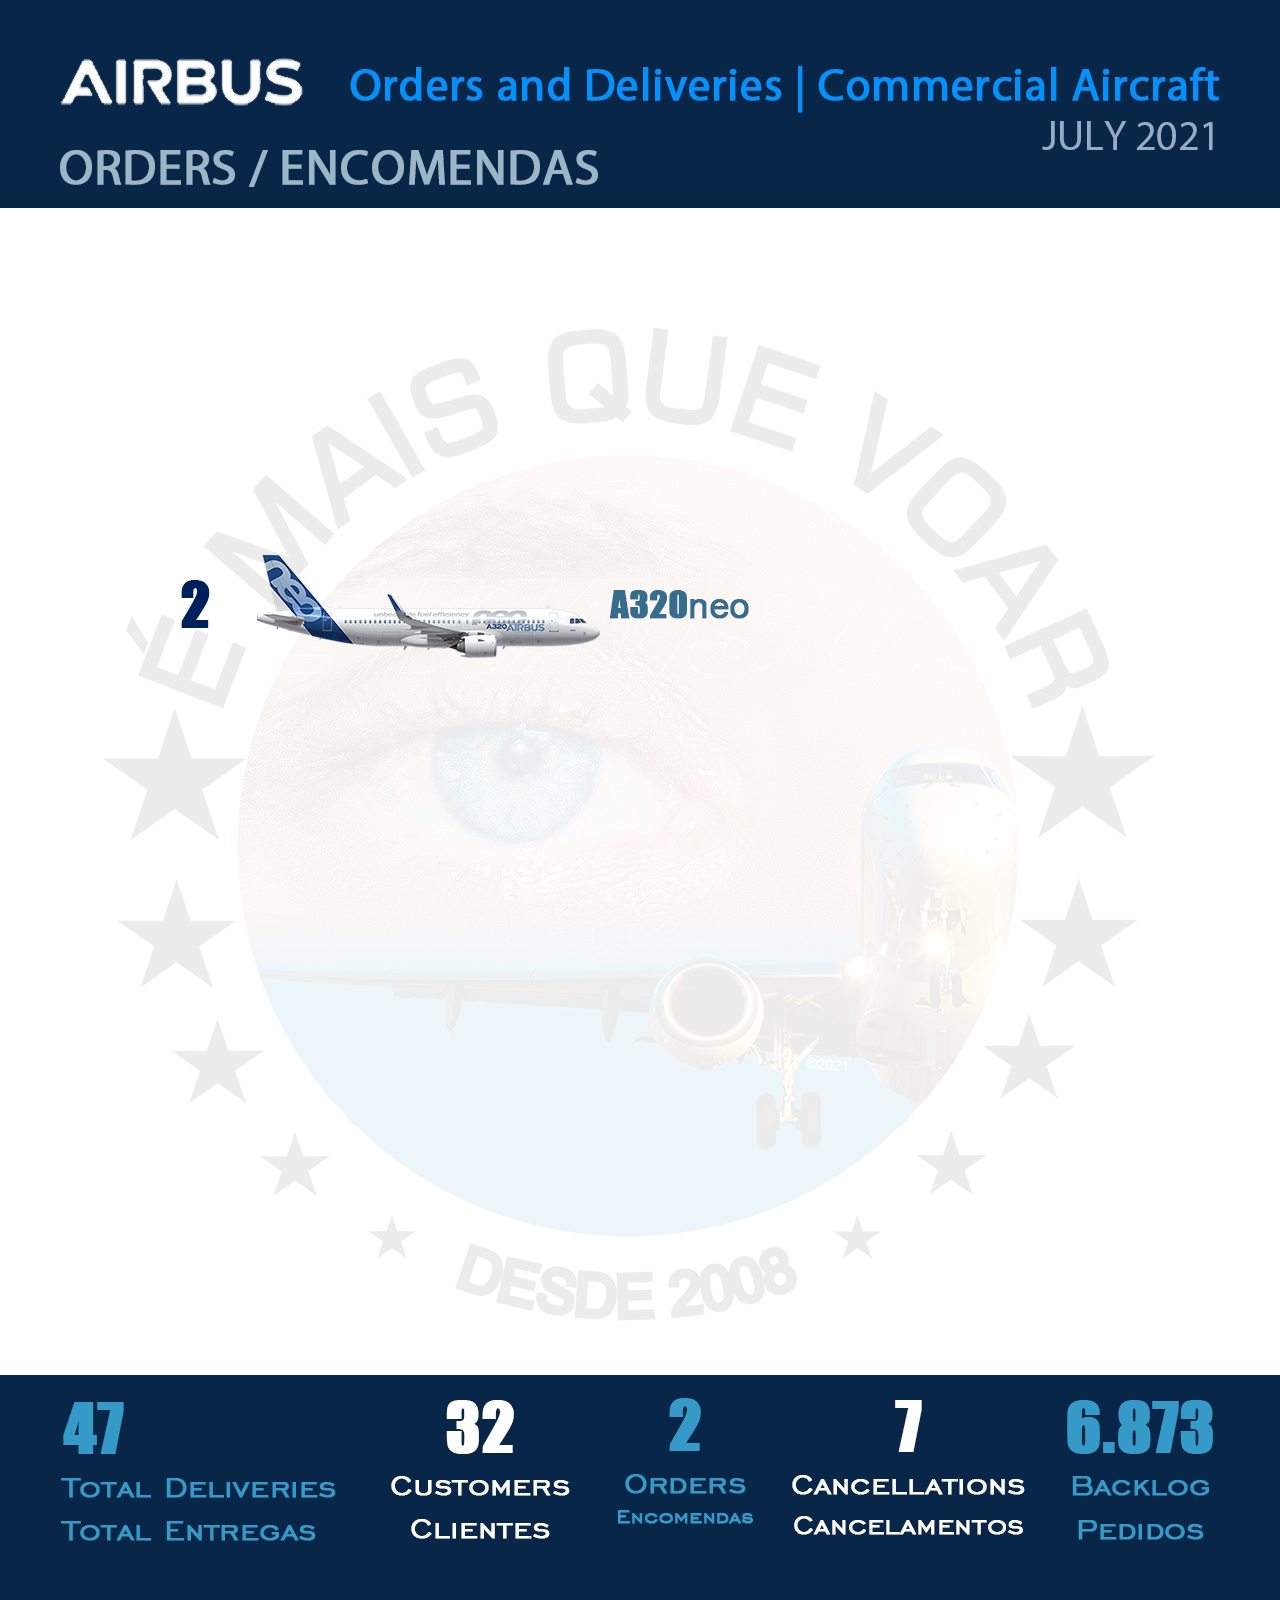 INFOGRAPHIC: Orders and Deliveries Airbus Commercial Aircraft – July 2021   MORE THAN FLY